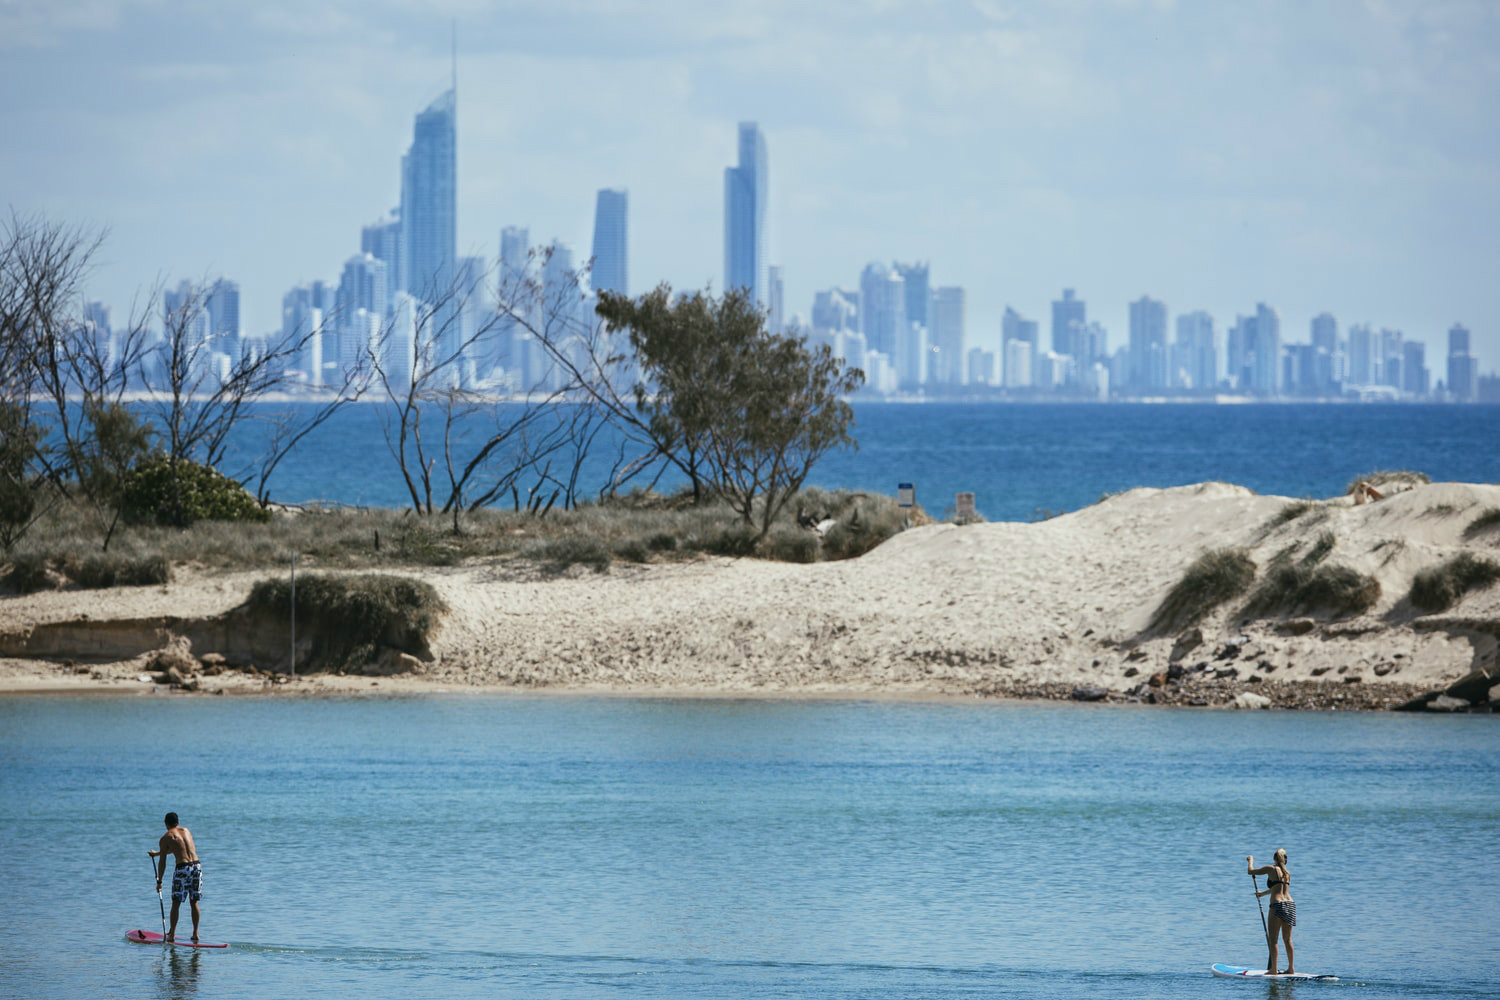 Queensland lures tourists with bespoke trip planner